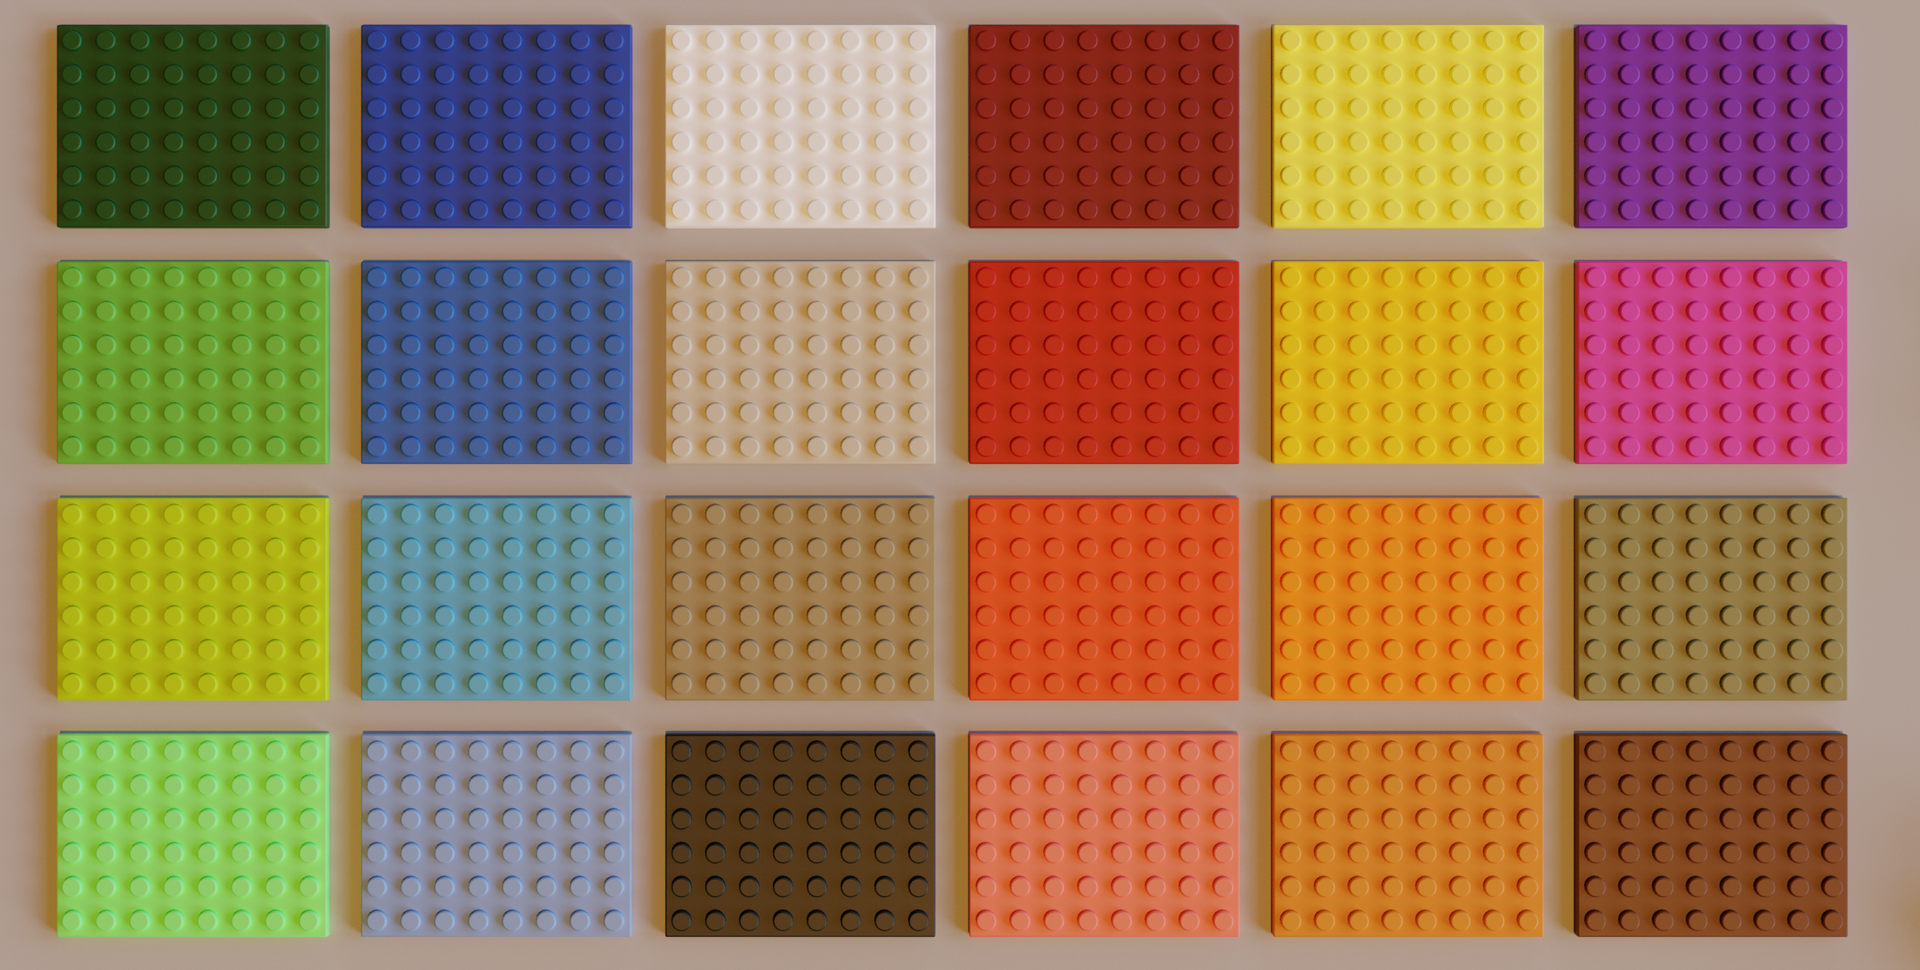 Lego Bricks Colors